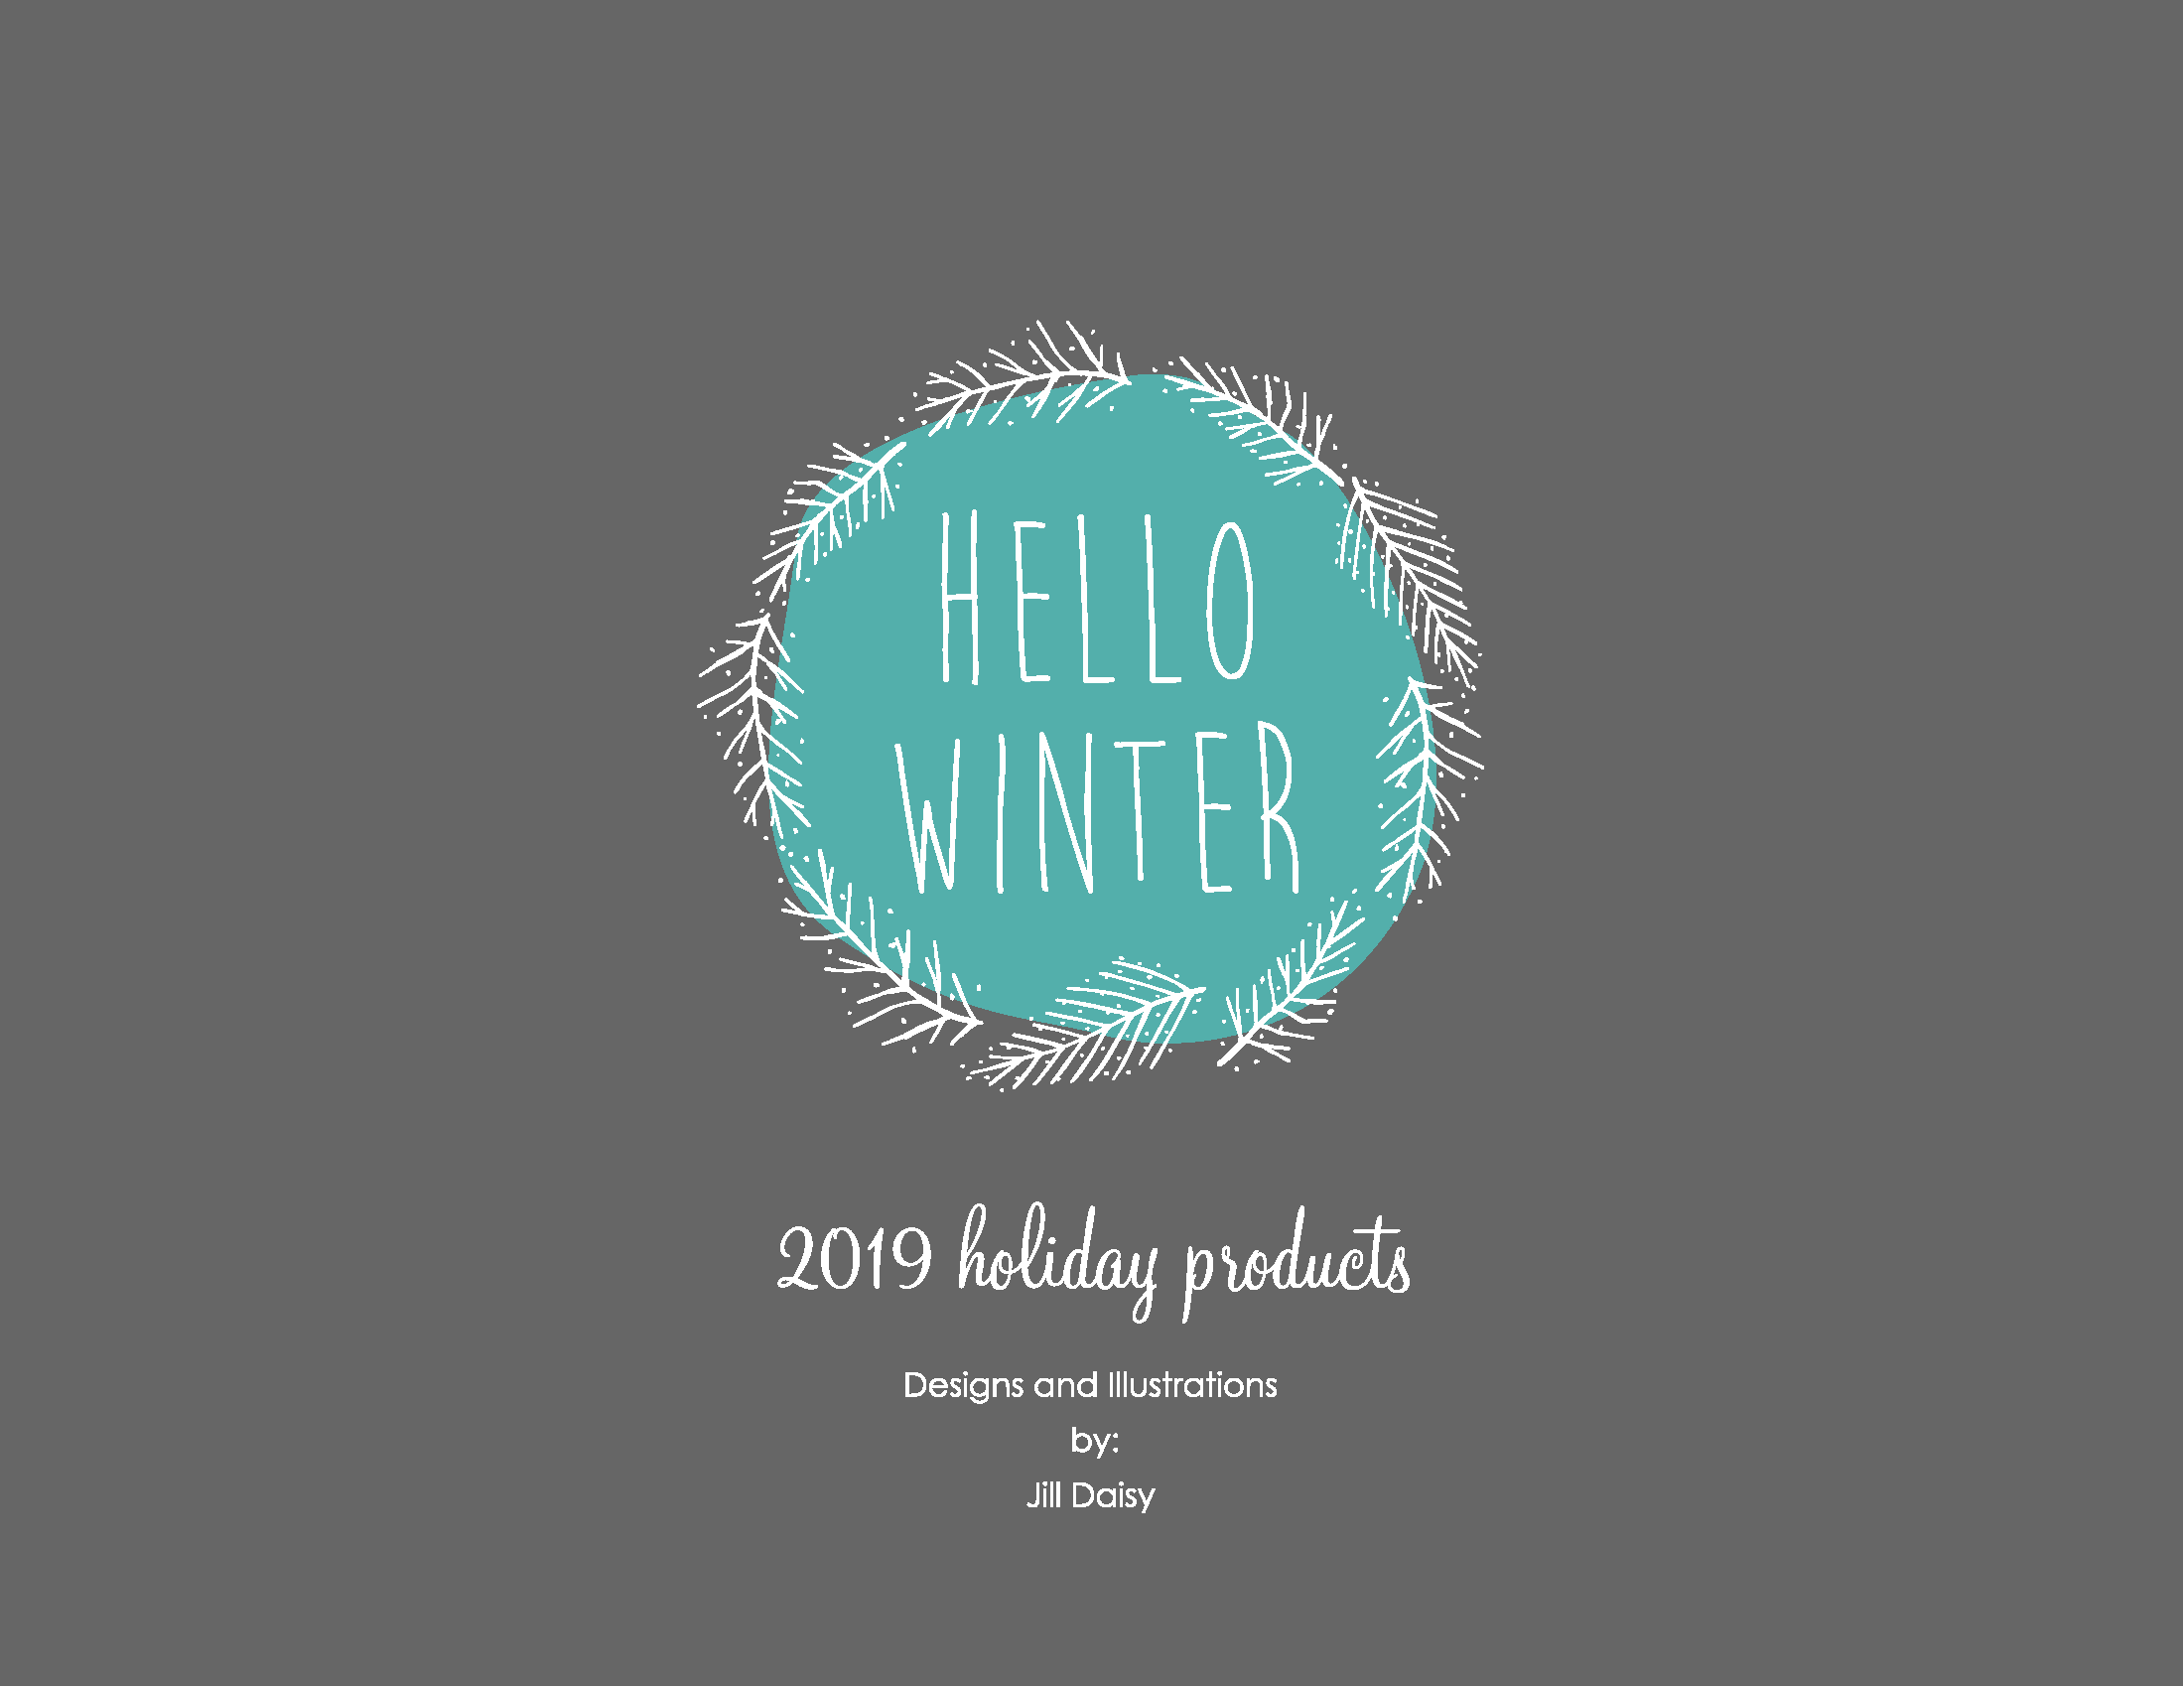 HelloWinter-2019-Holiday Products-OL_Page_1.png